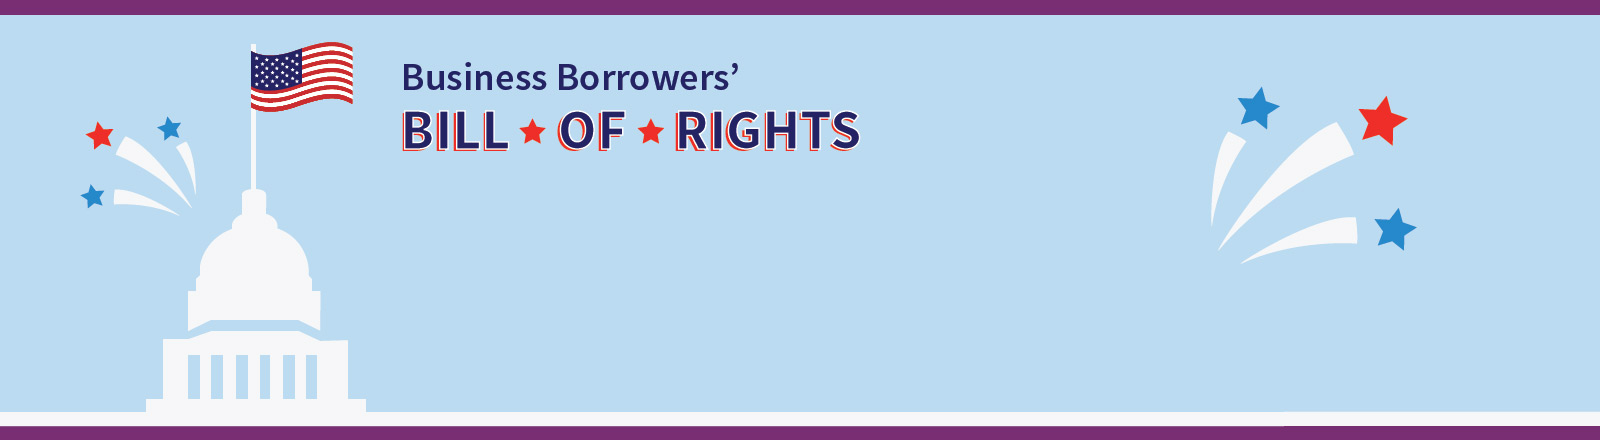 We launched a Borrower Bill of Rights